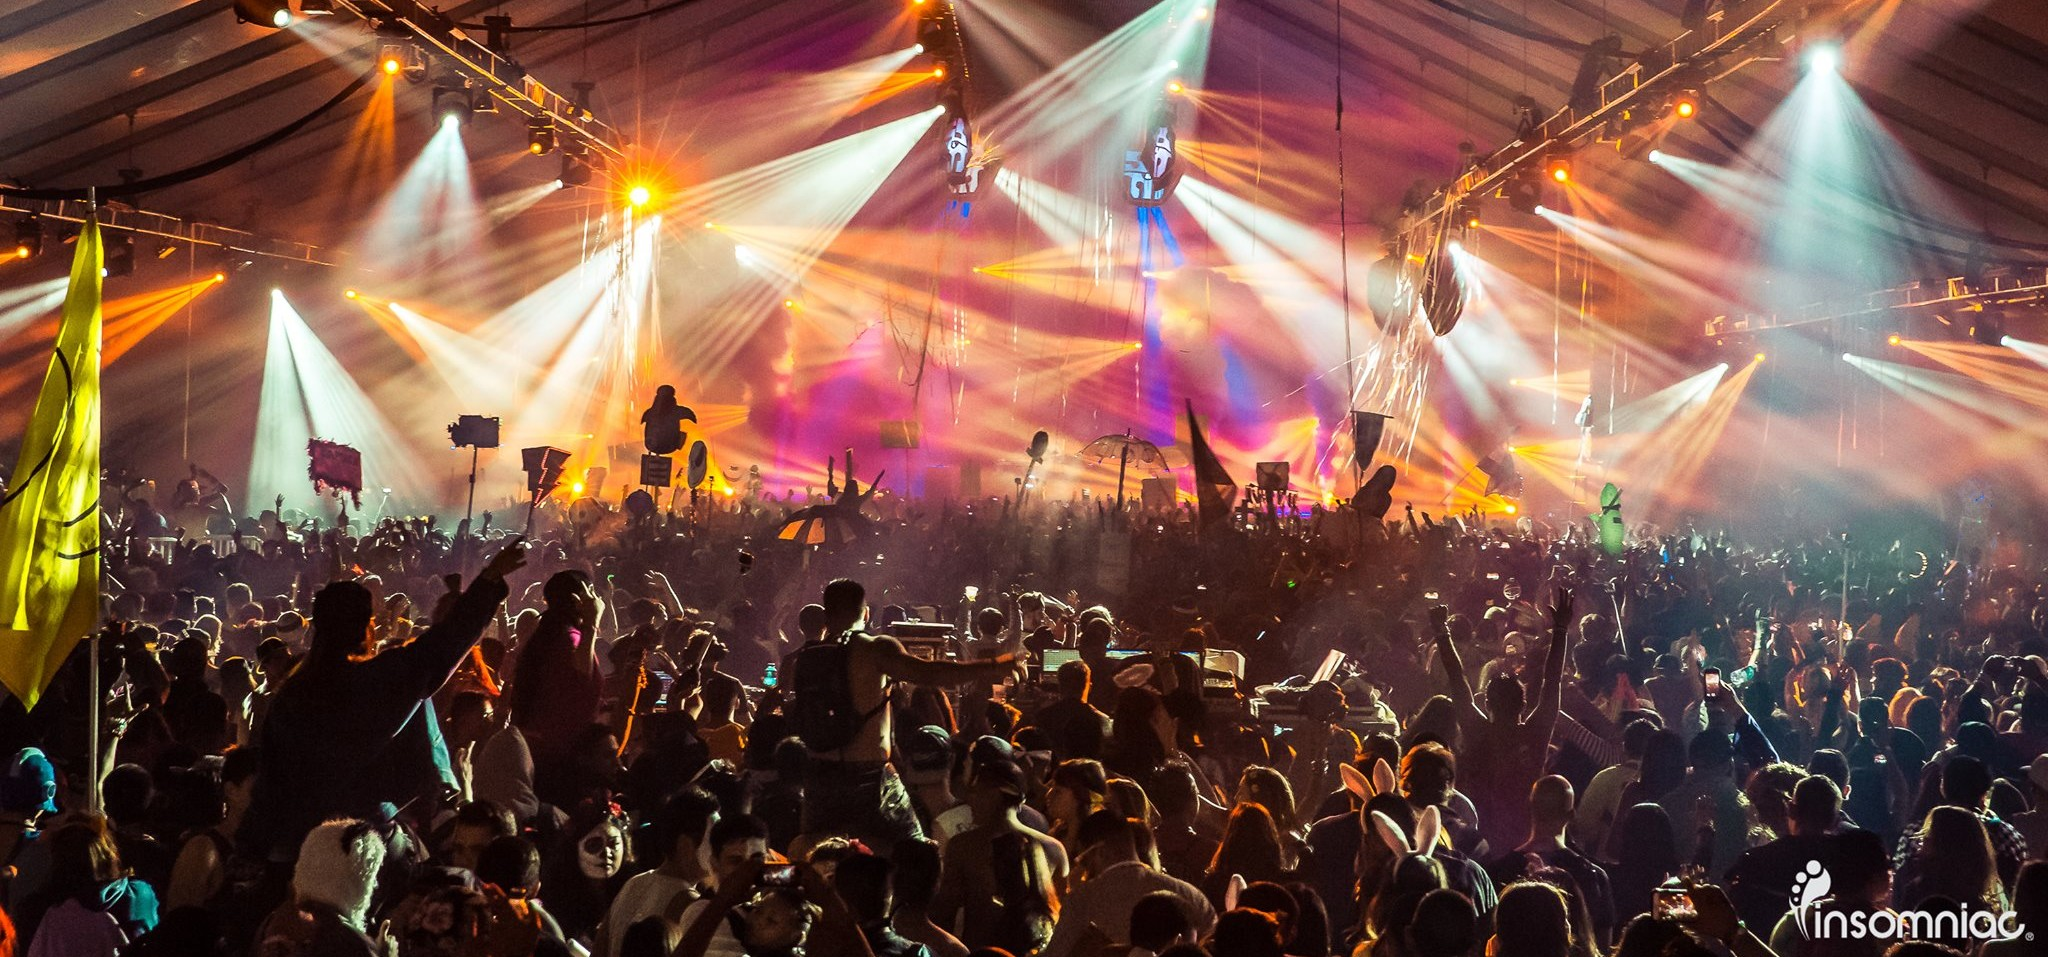 Are You Ready to Ring In The New Year at Insomniac Countdown NYE?